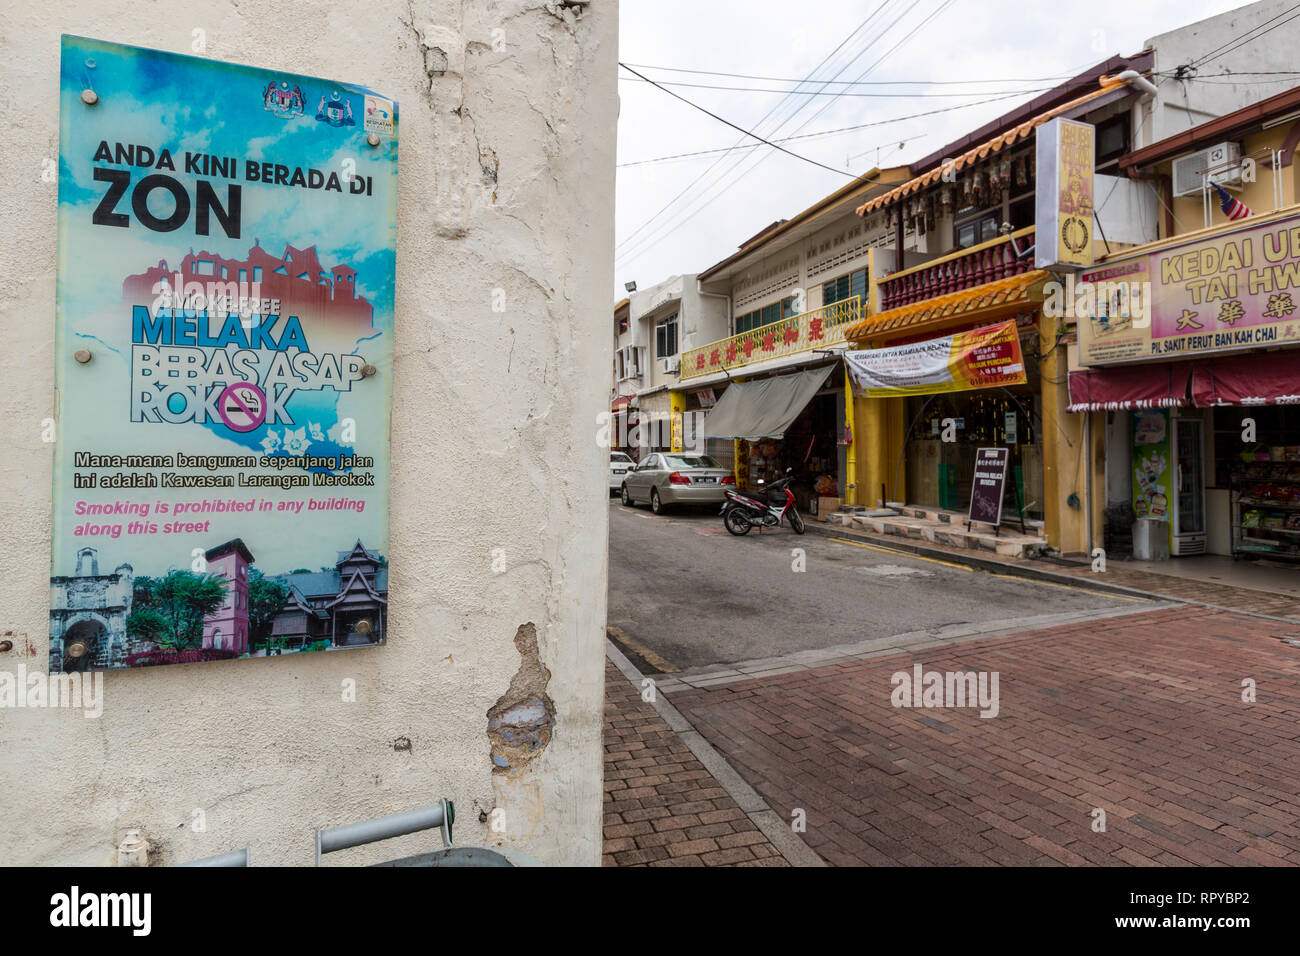 Sign Prohibits Smoking in Buildings in Heritage Area, Melaka, Malaysia. - Stock Image